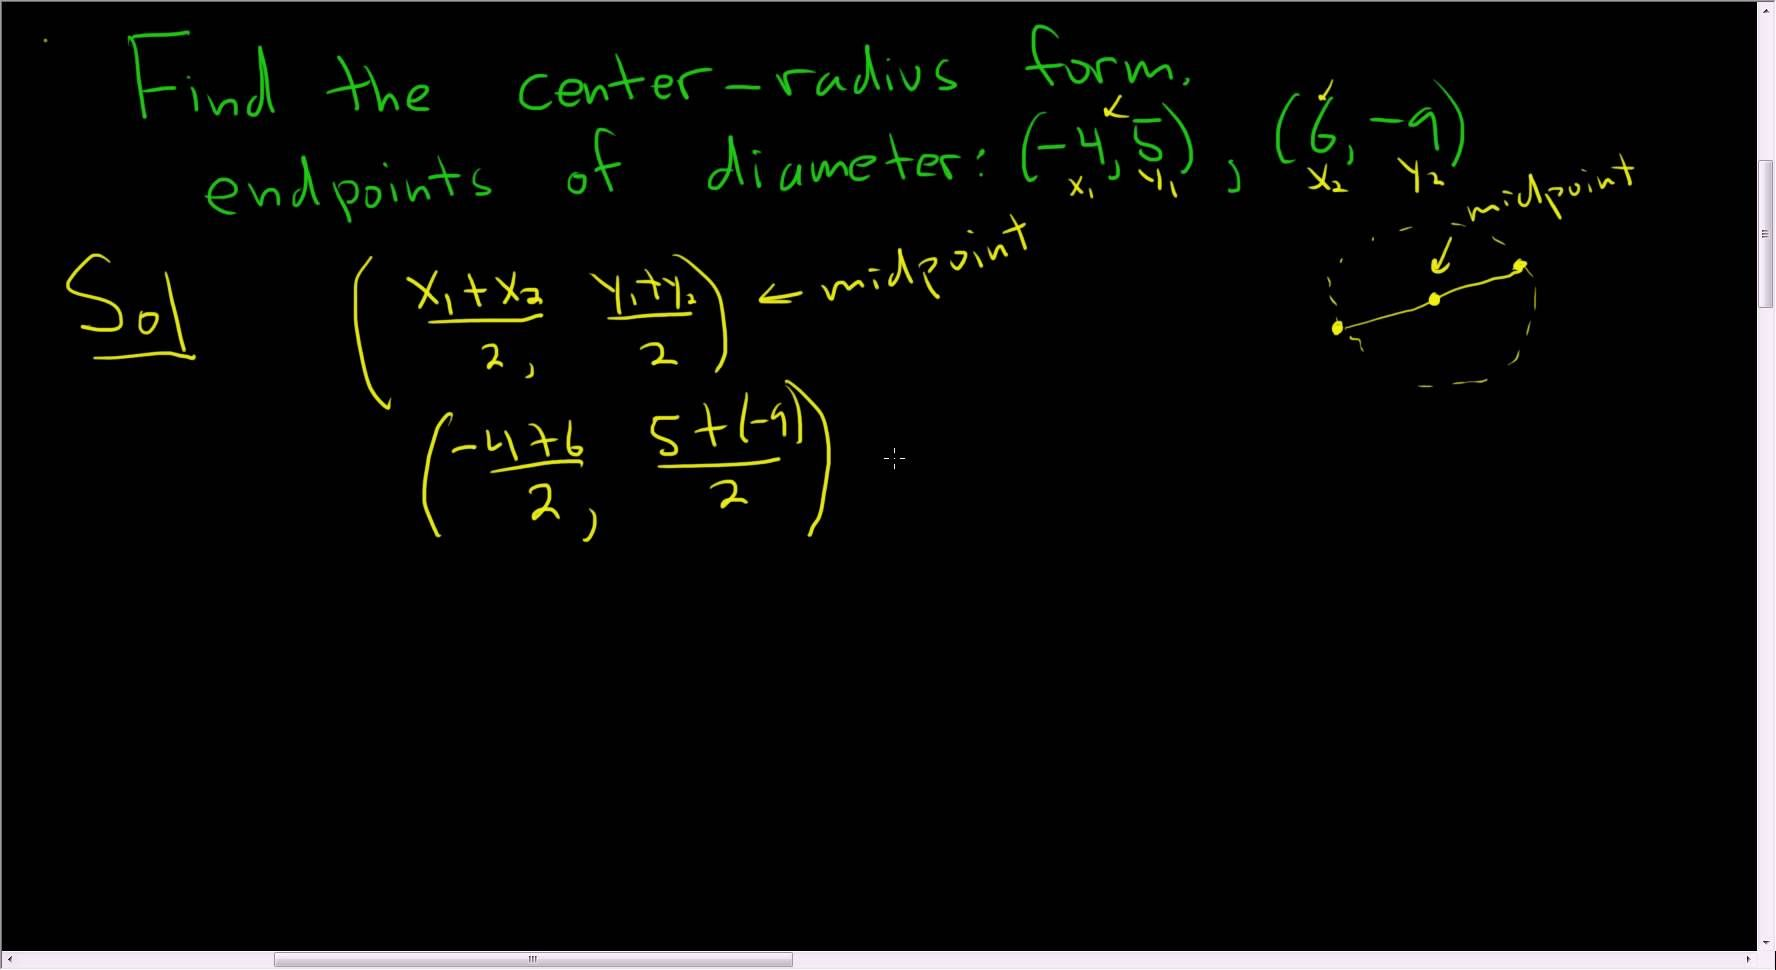 Finding The Center Radius Form Of A Circle The Given